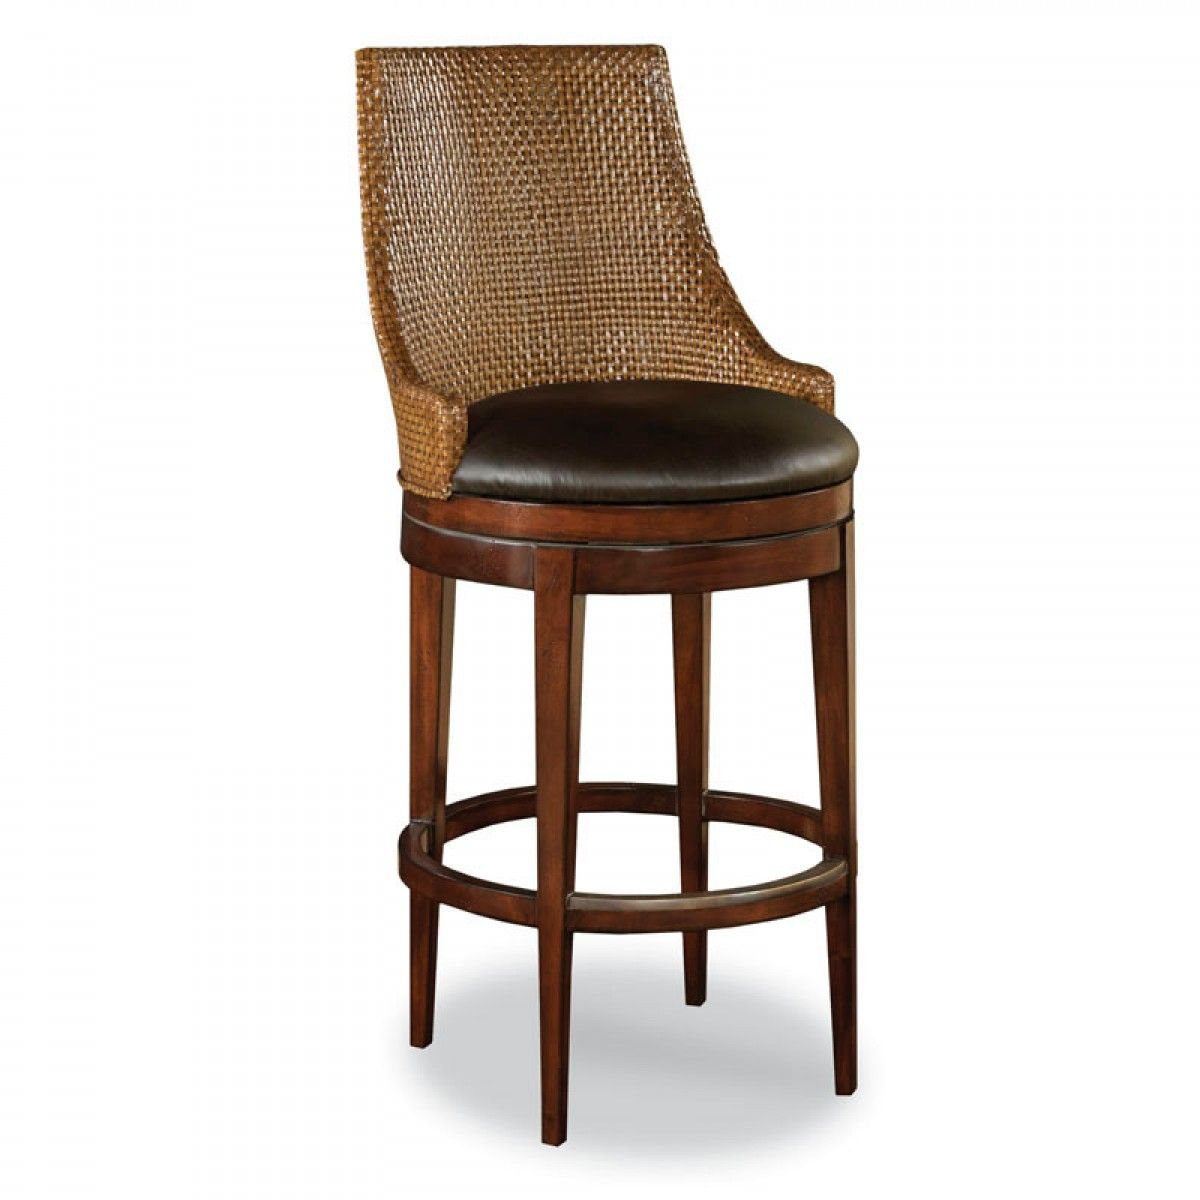 woodbridge woven leather swivel counter stool - Leather Counter Stools